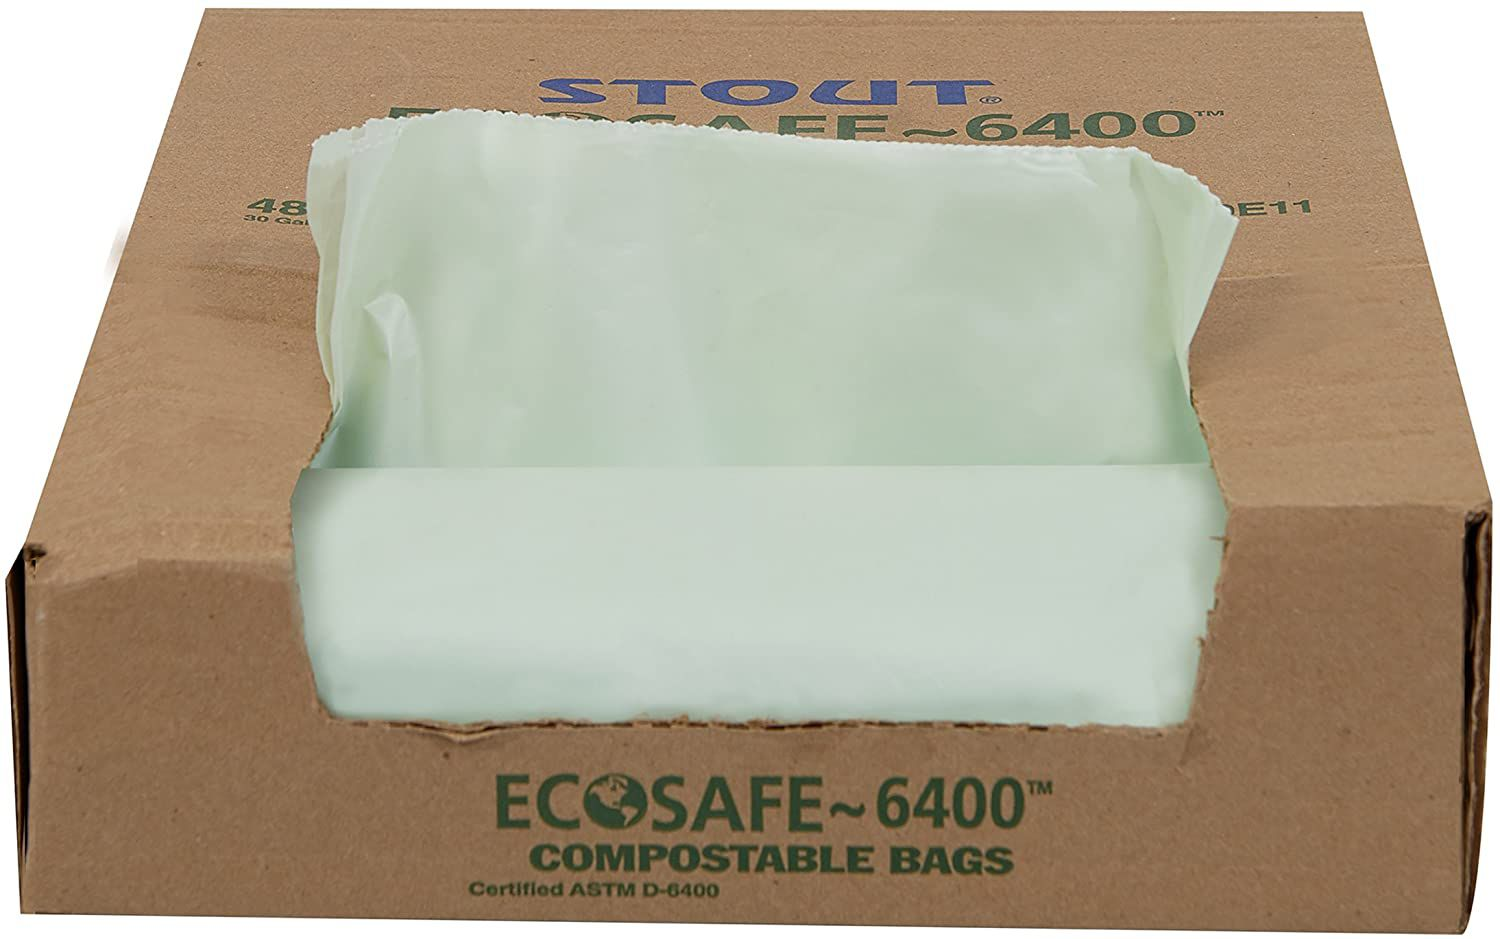 STOUT by Envision EcoSafe-6400 Compostable Bags